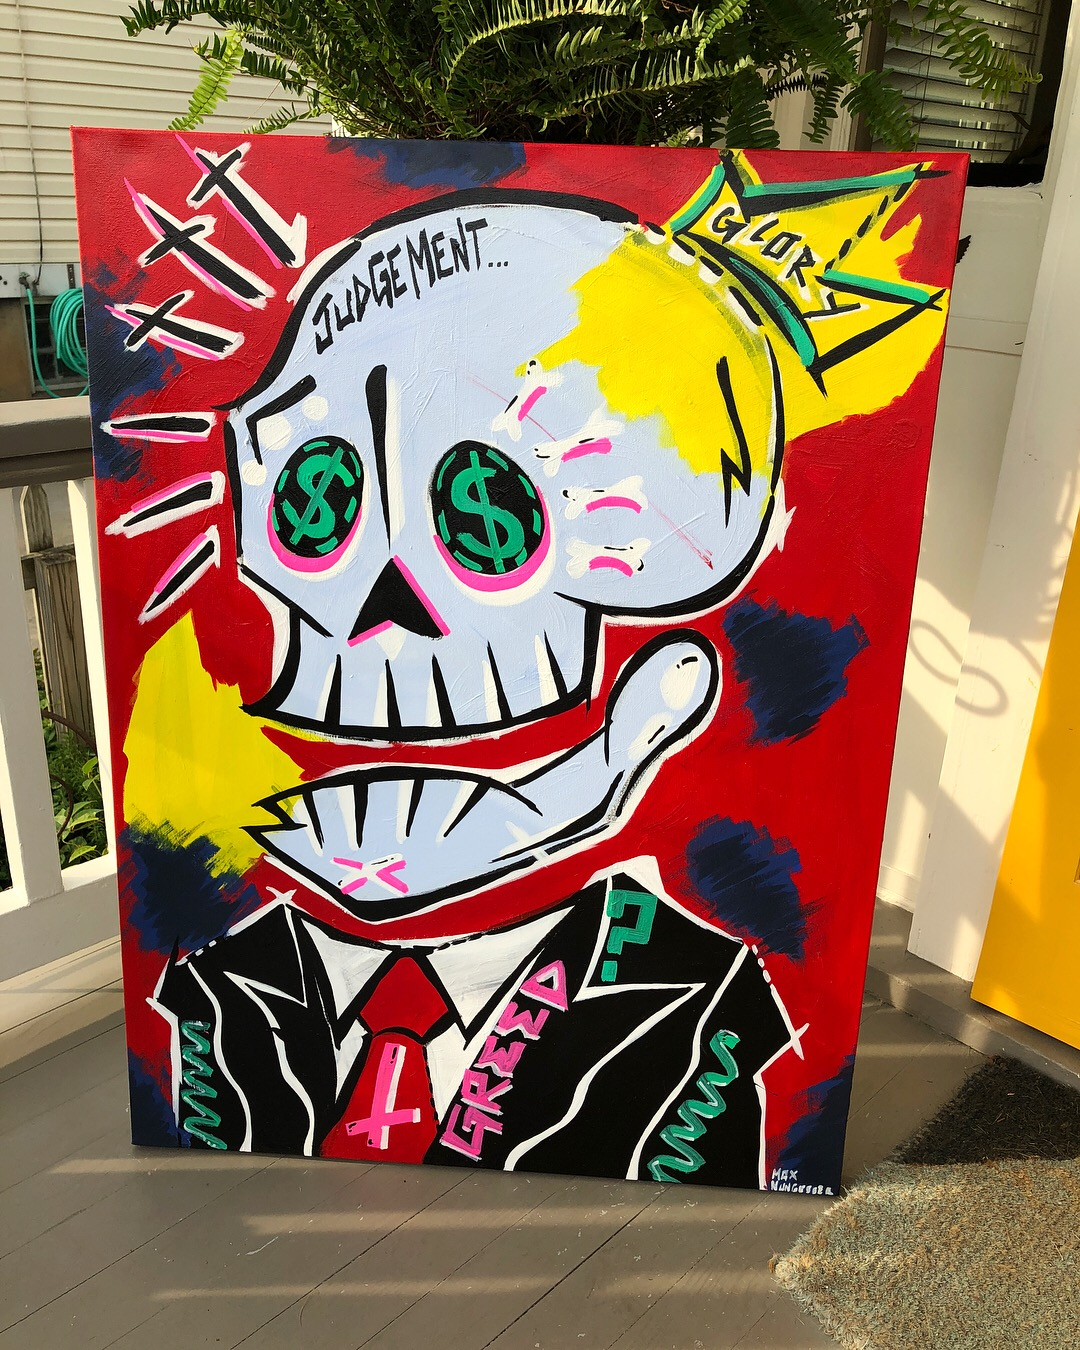 Suits  (3ft.x2ft.) - acrylic & marker on canvas - $350.00  To purchase email maxnungesser@gmail.com